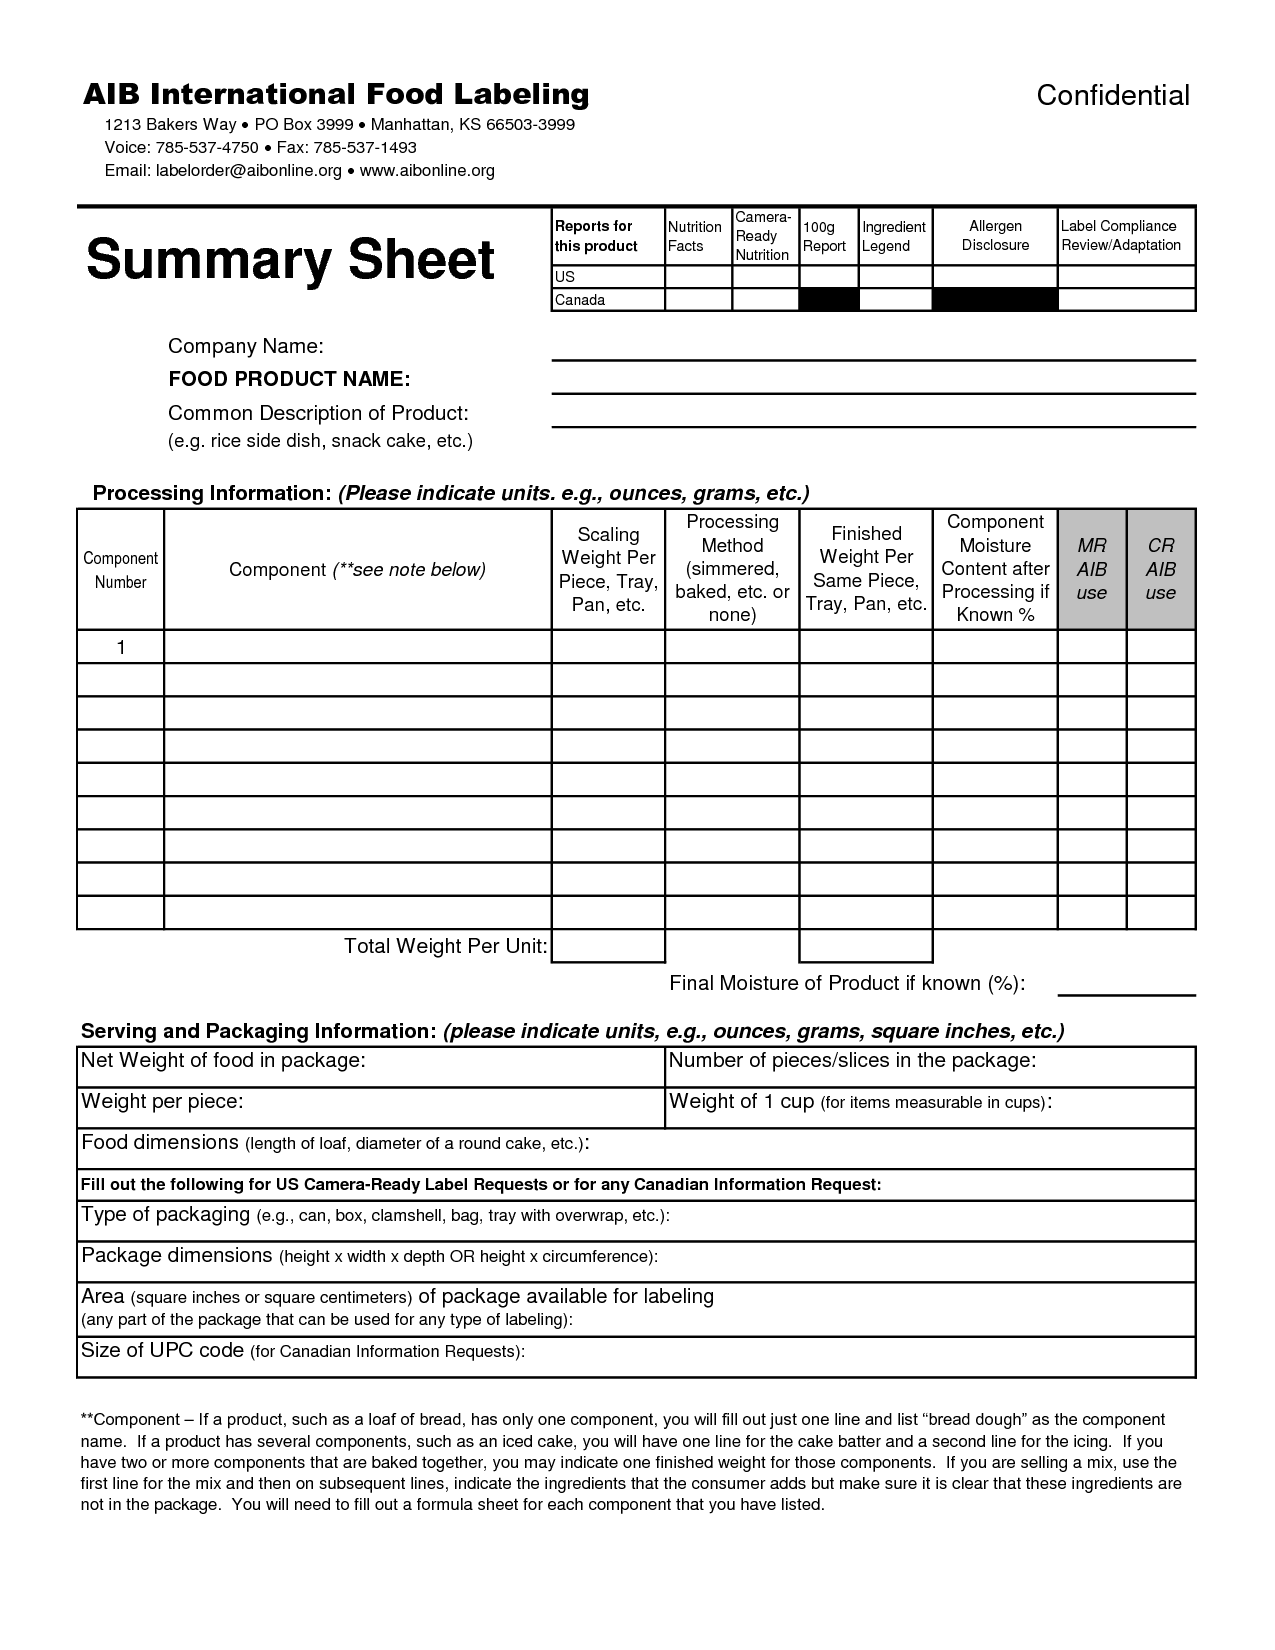 How To Read Food Labels Worksheet 1262326